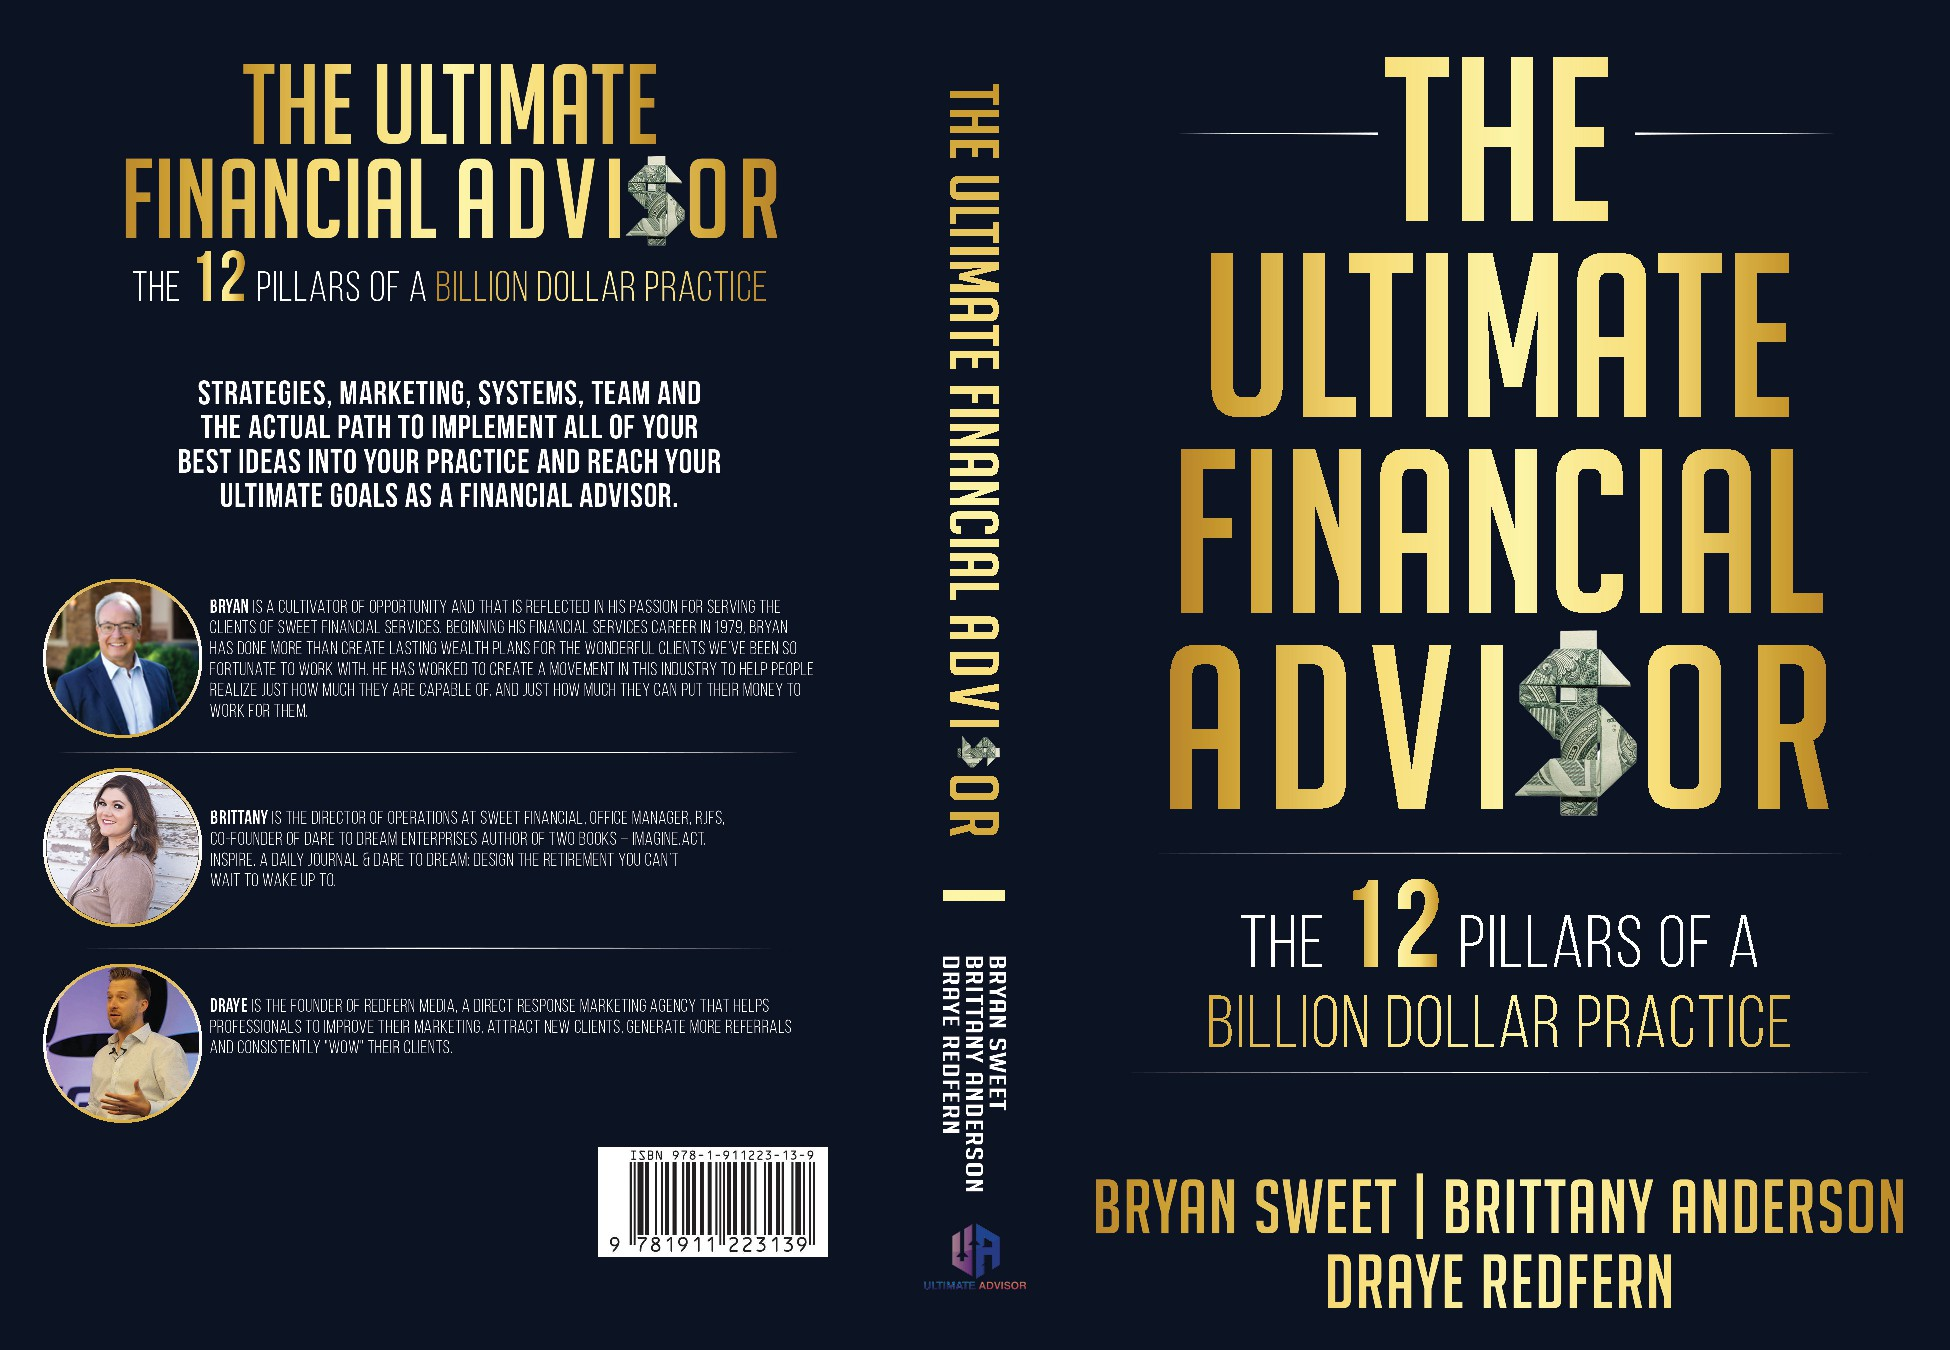 We need a powerful book cover to appeal to Financial Advisors